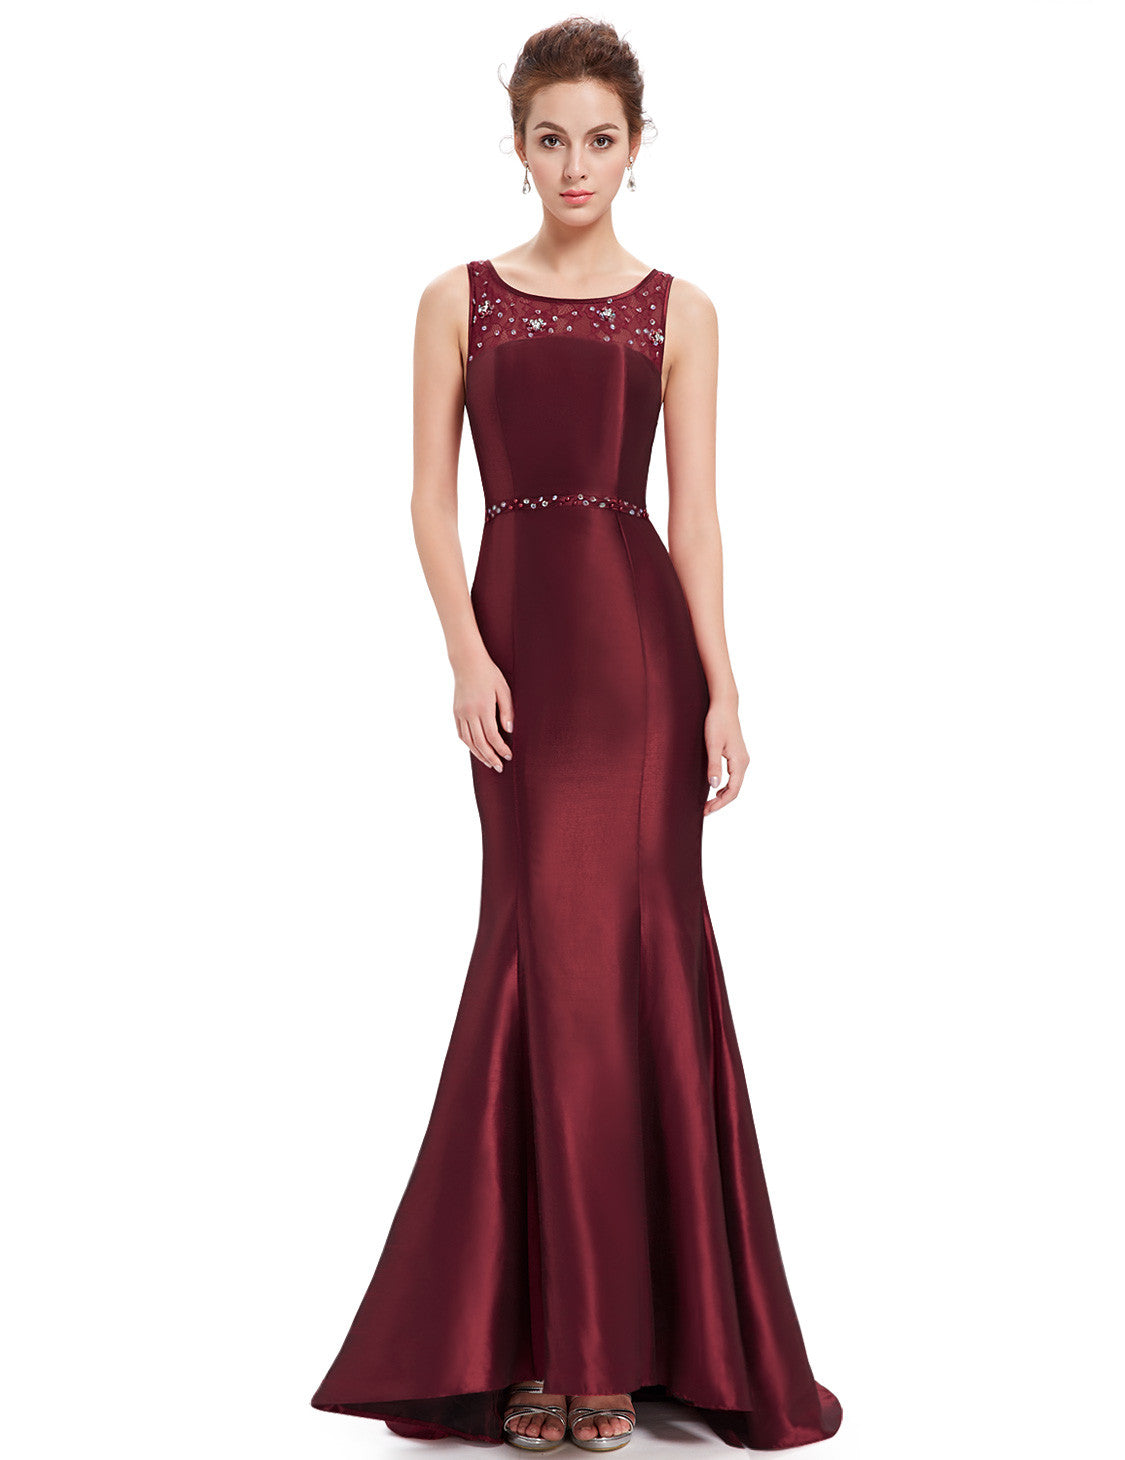 Obeige Stunning Trailing Round Neck Fishtail Evening Dress